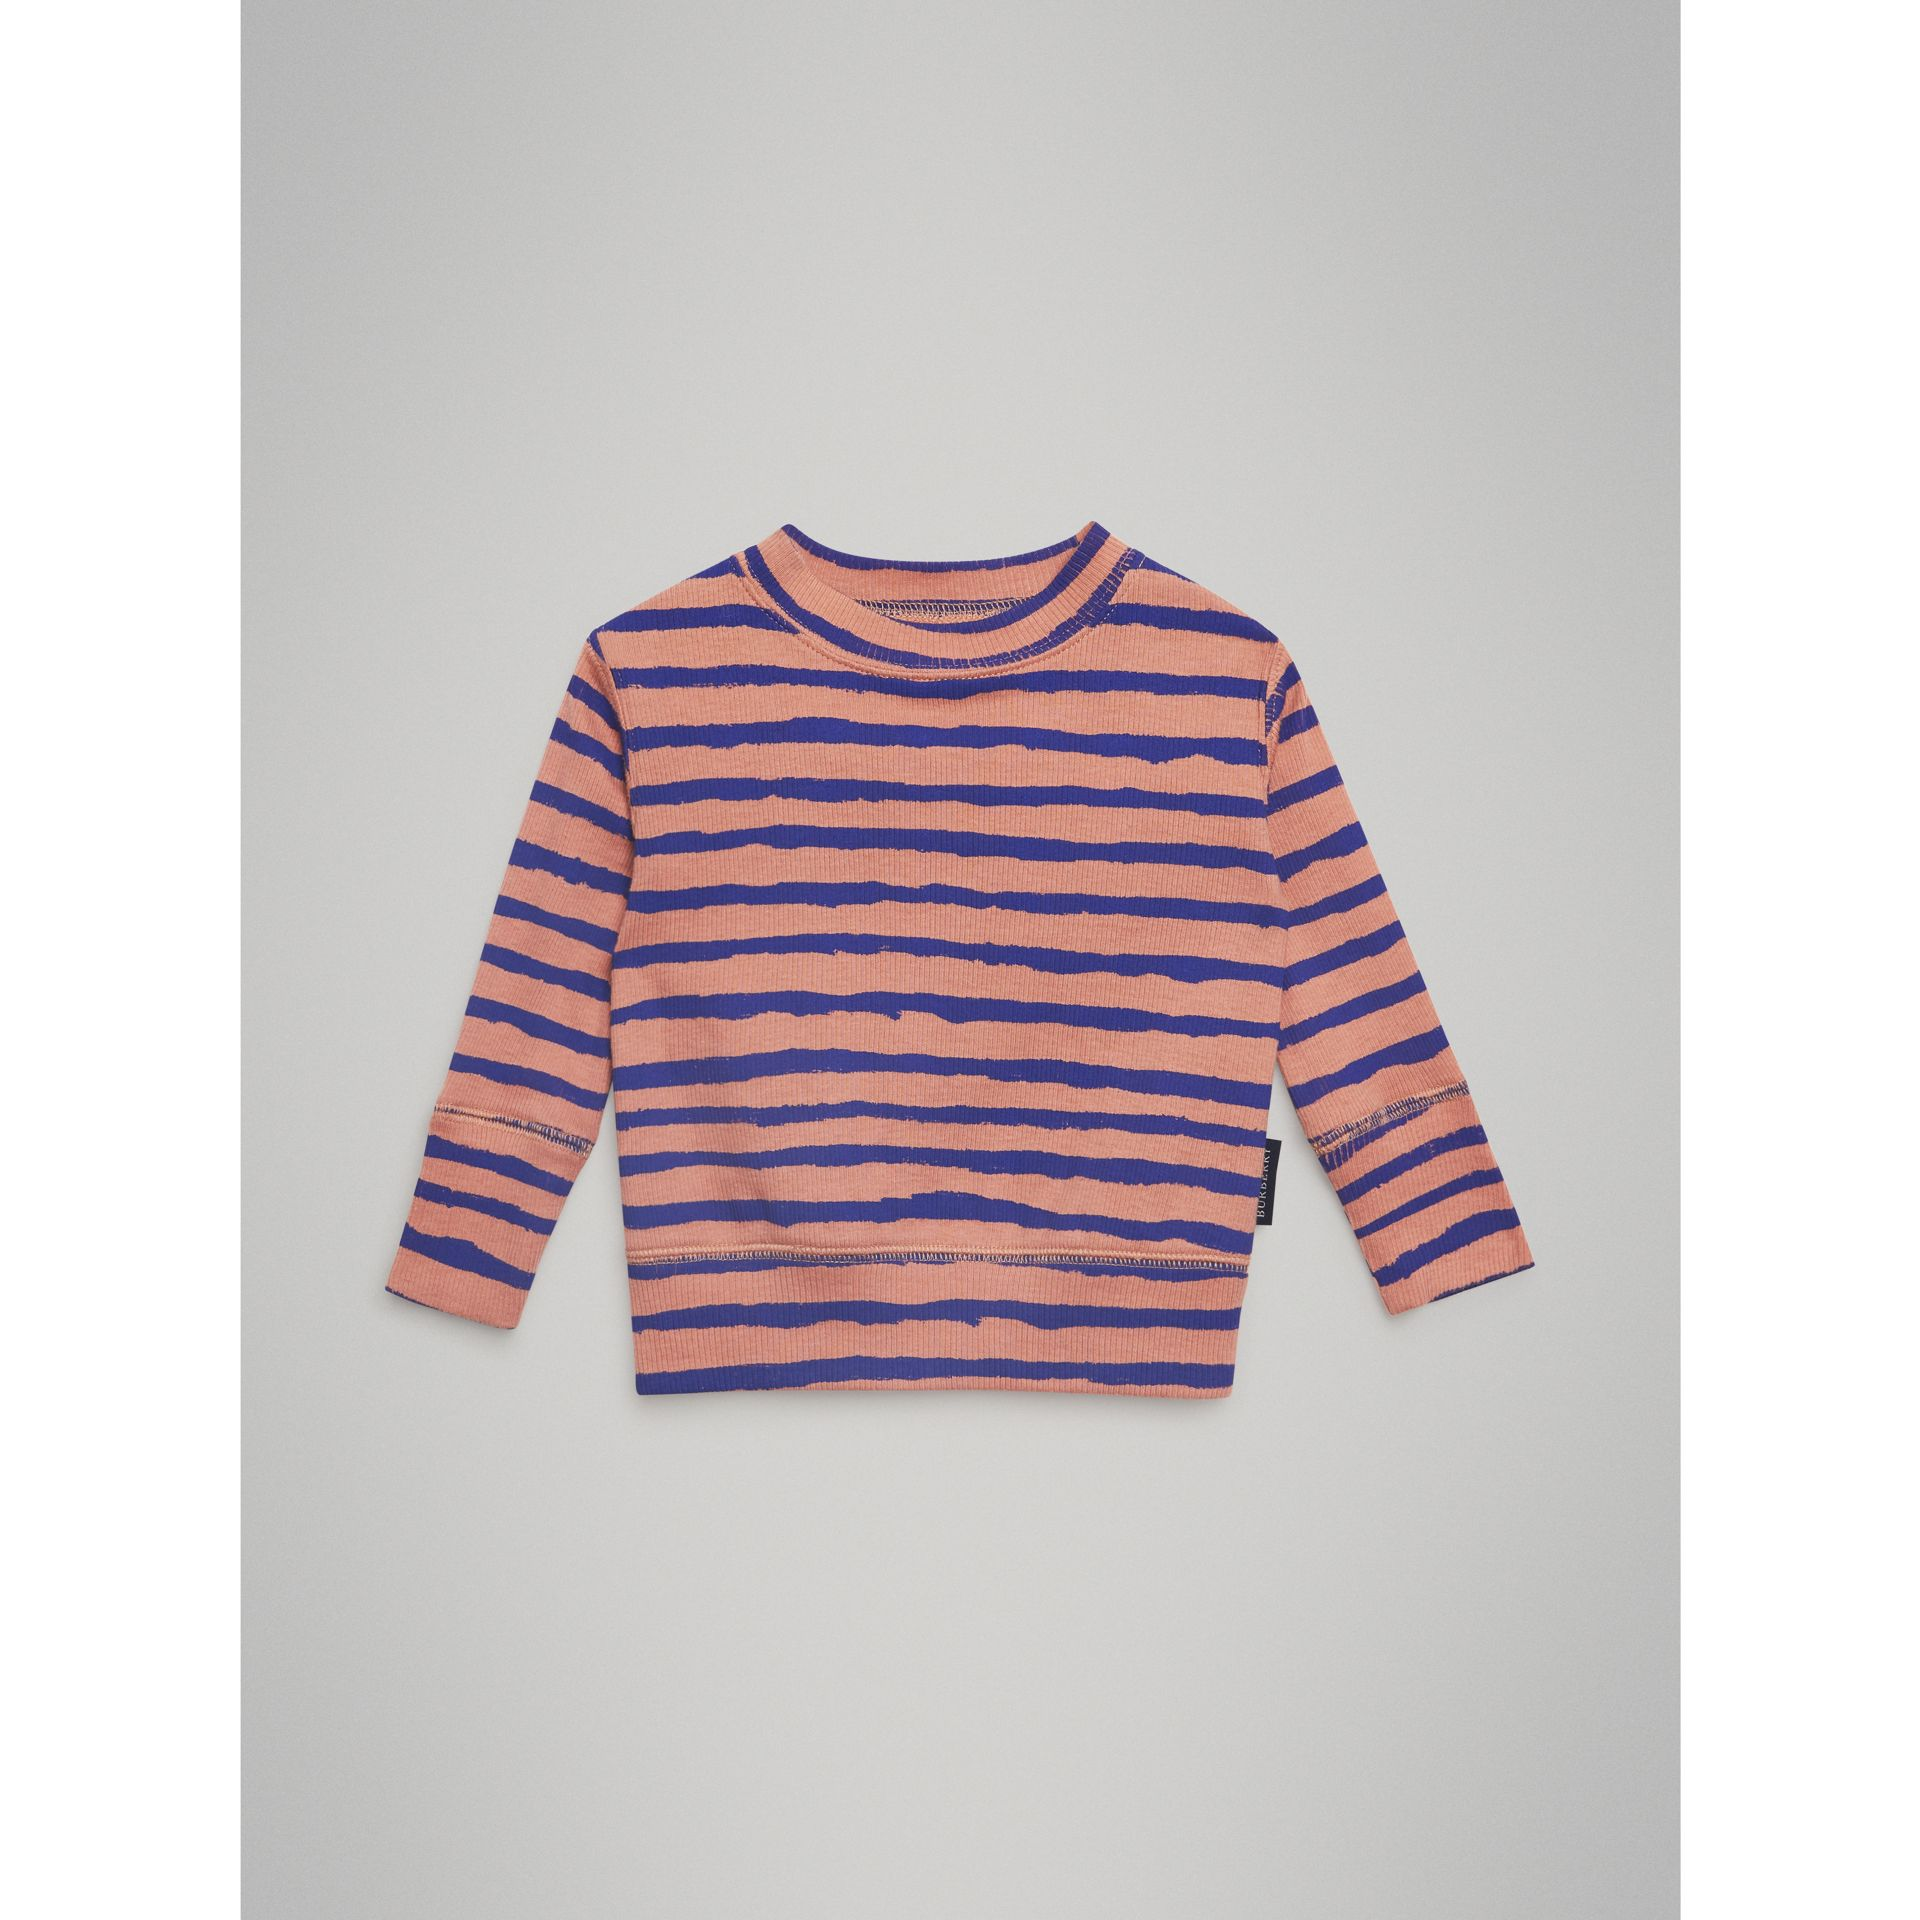 Striped Rib Knit Cotton Sweatshirt in Dusty Pink - Children | Burberry Australia - gallery image 0